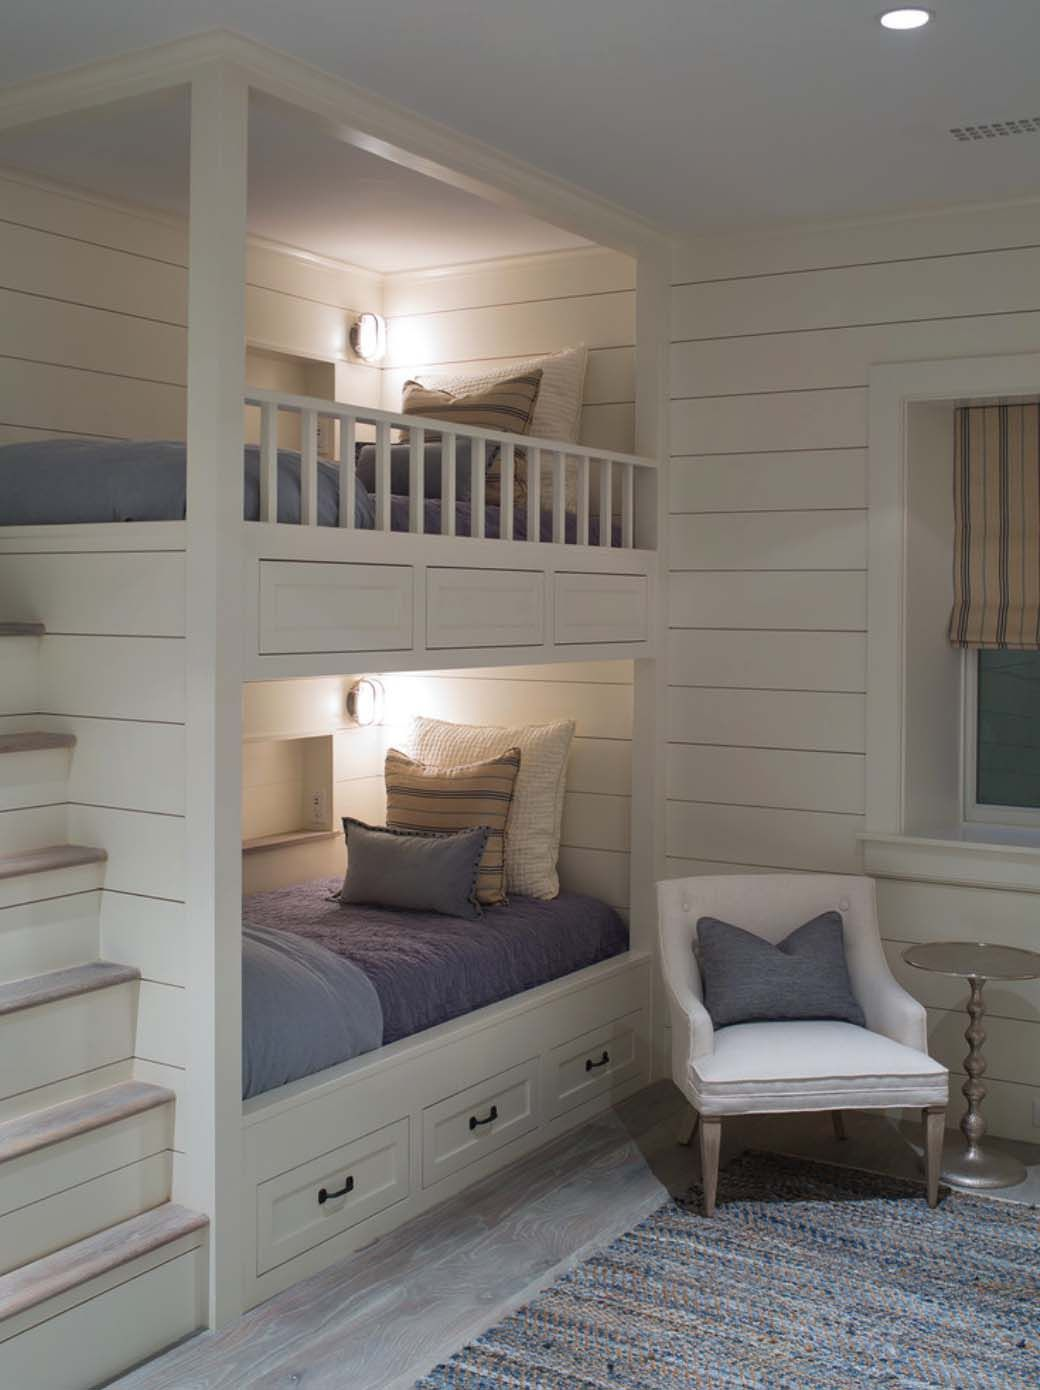 Kids loft bedroom ideas  contemporarycottagedesignjonathanraithkindesign  Attic